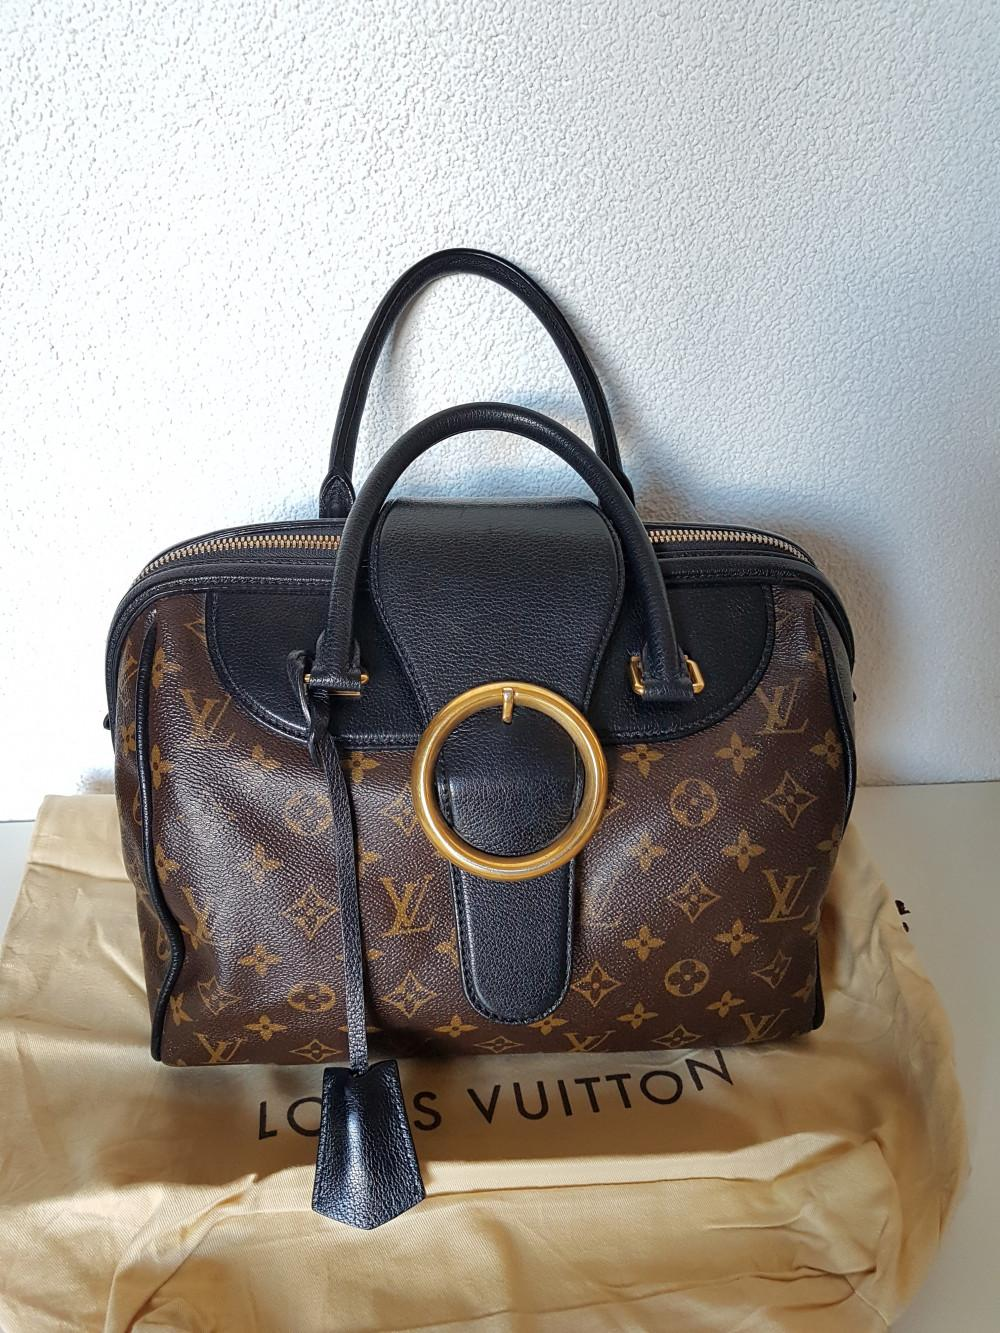 louis-vuitton-96161-352728